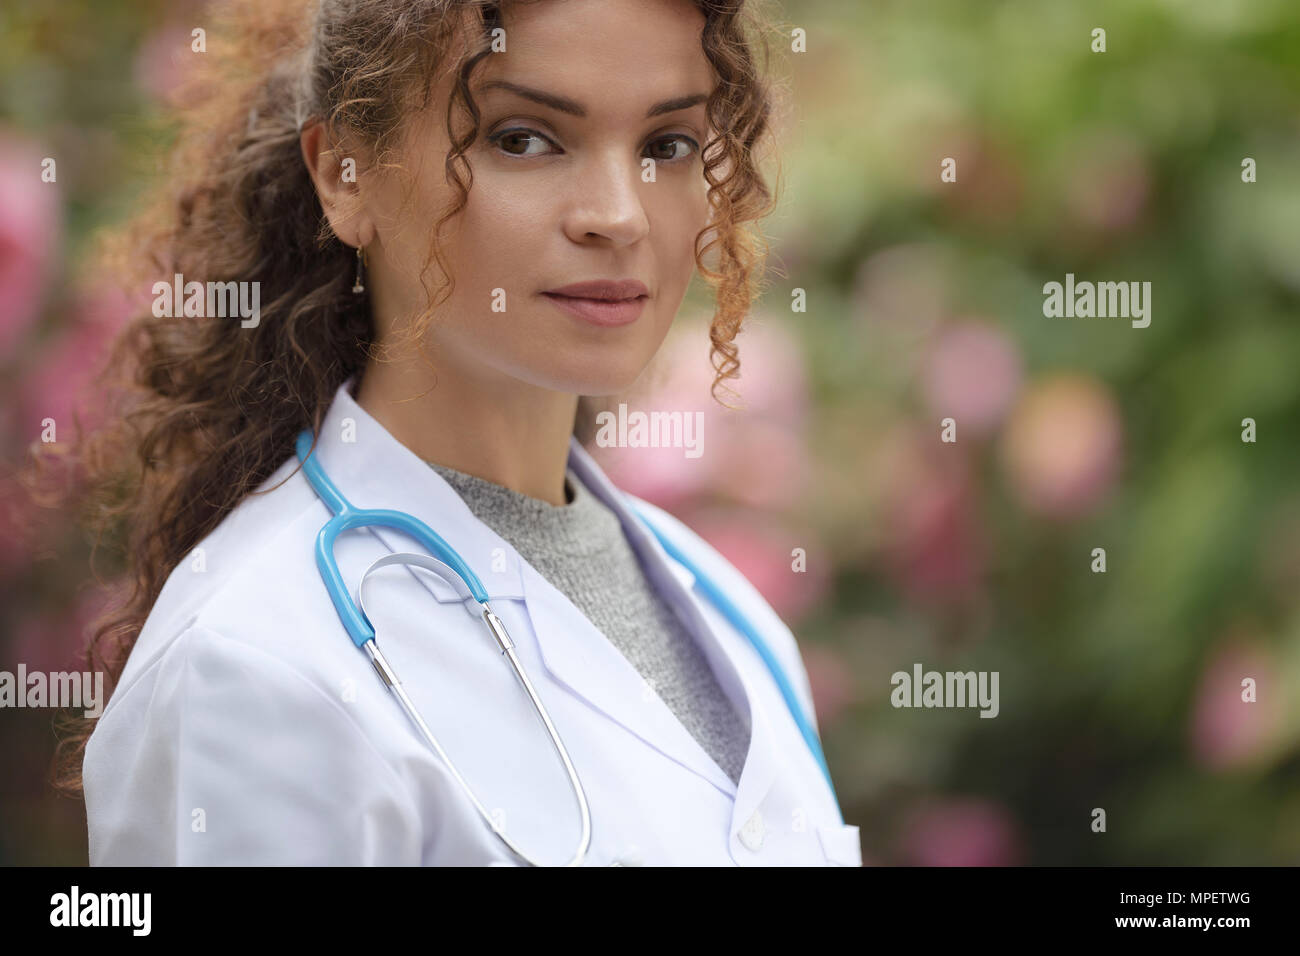 Portrait of a young woman, doctor, physician, medical practitioner in lab coat in natural outdoor settings - Stock Image